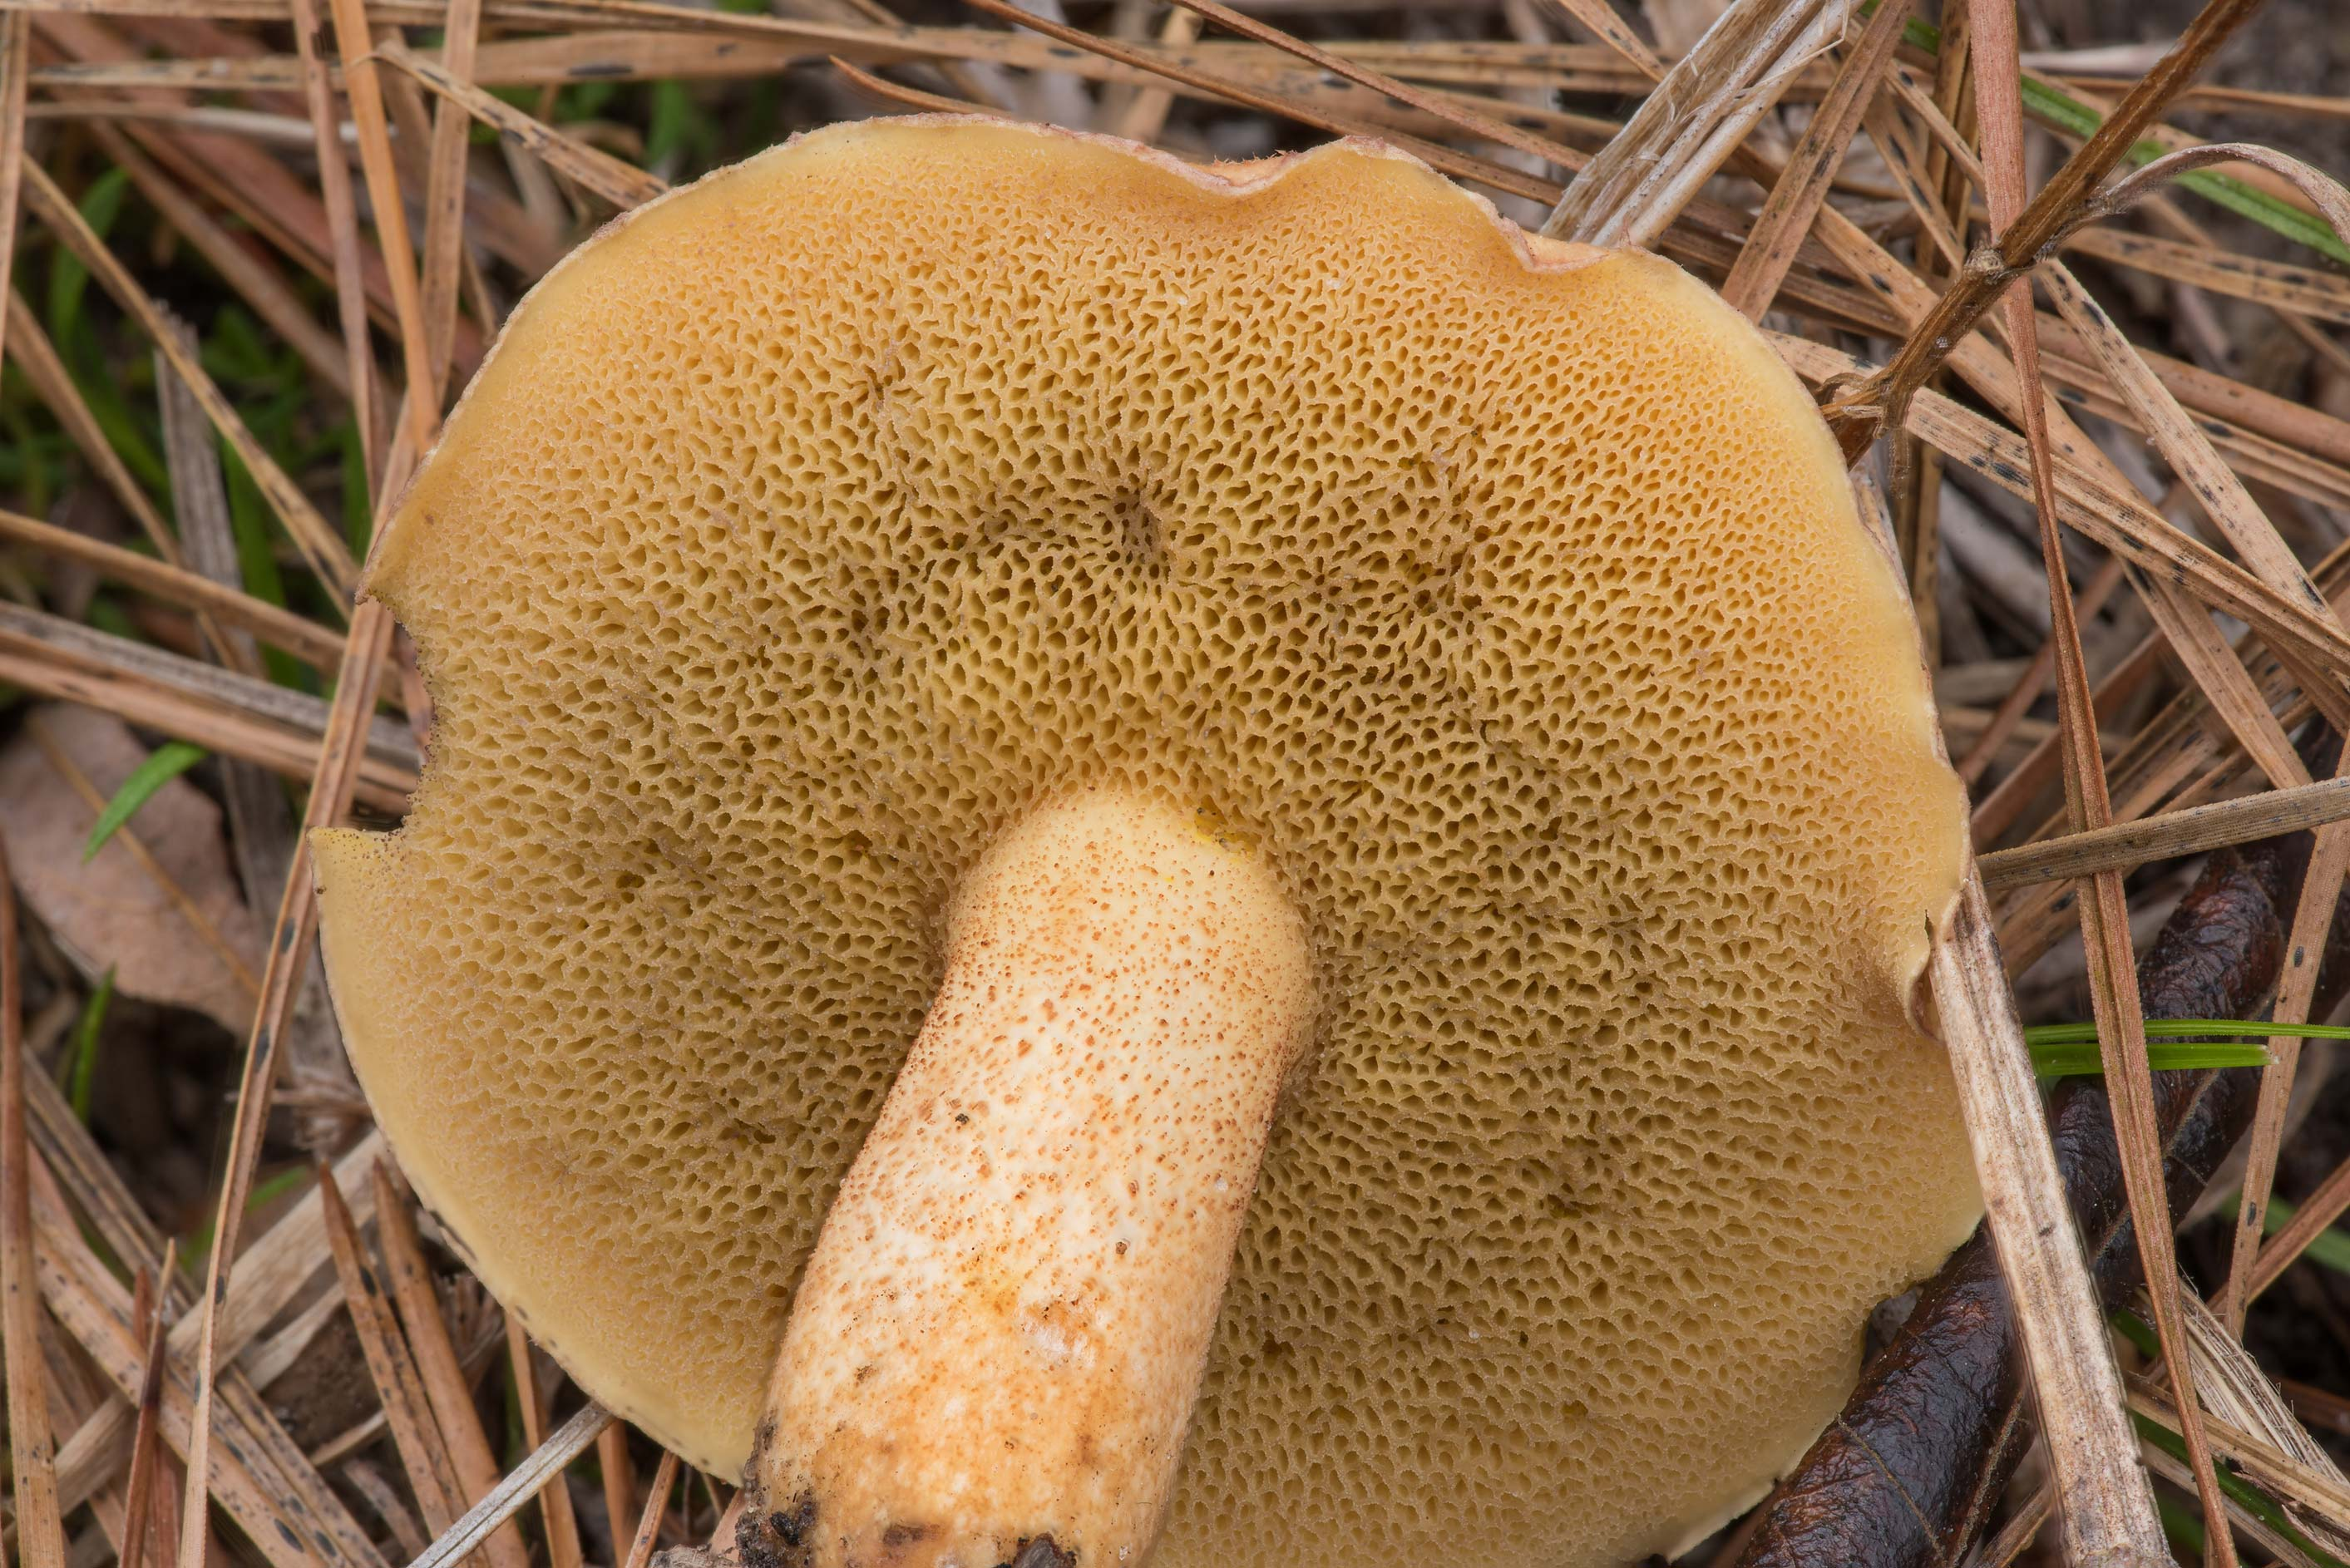 Underside of bolete mushroom Suillus hirtellus on...National Forest. Richards, Texas